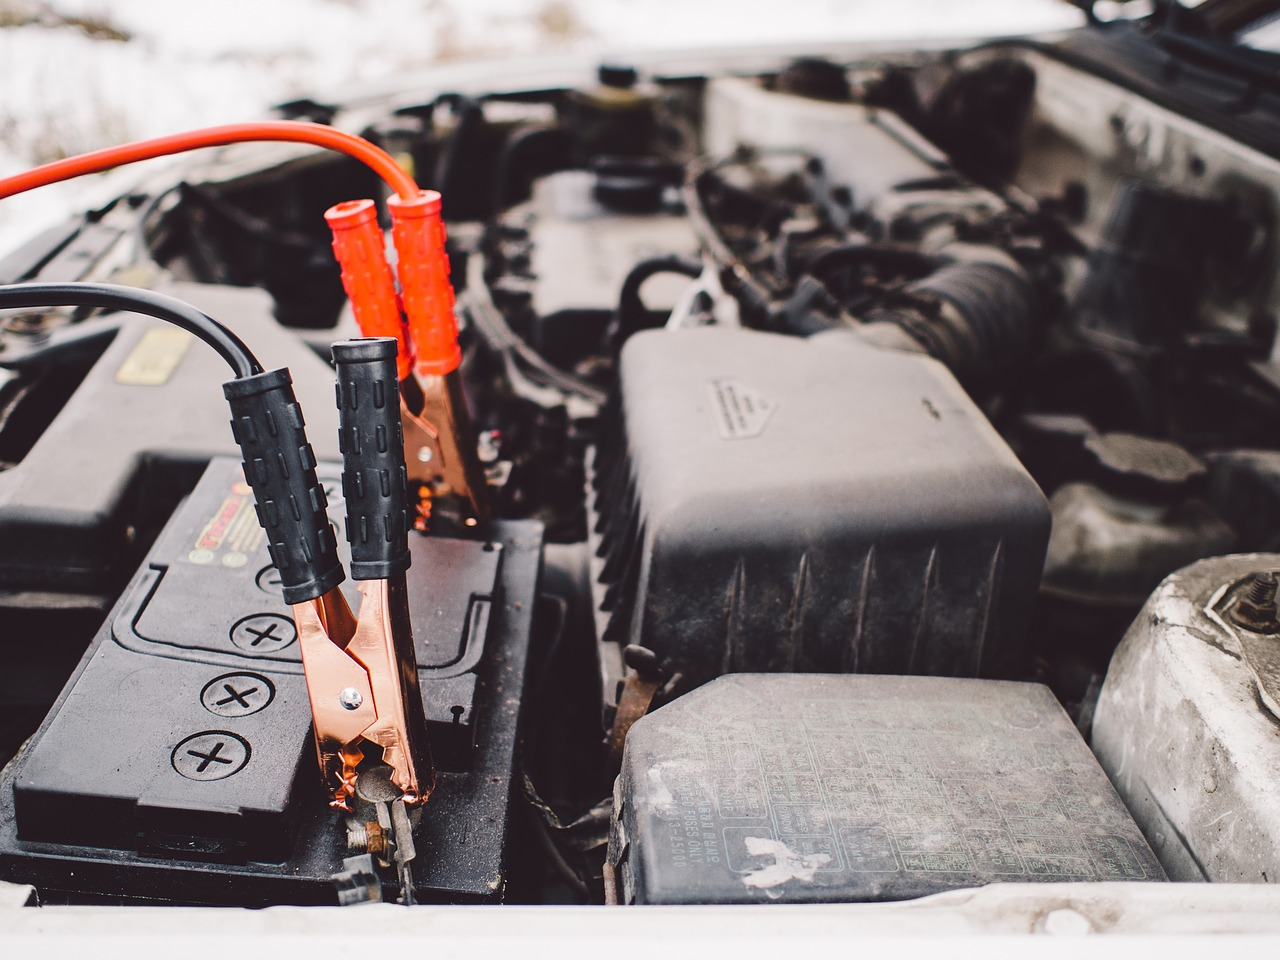 Avoiding Dead Car Batteries from the Summer Heat - The Kreative Life